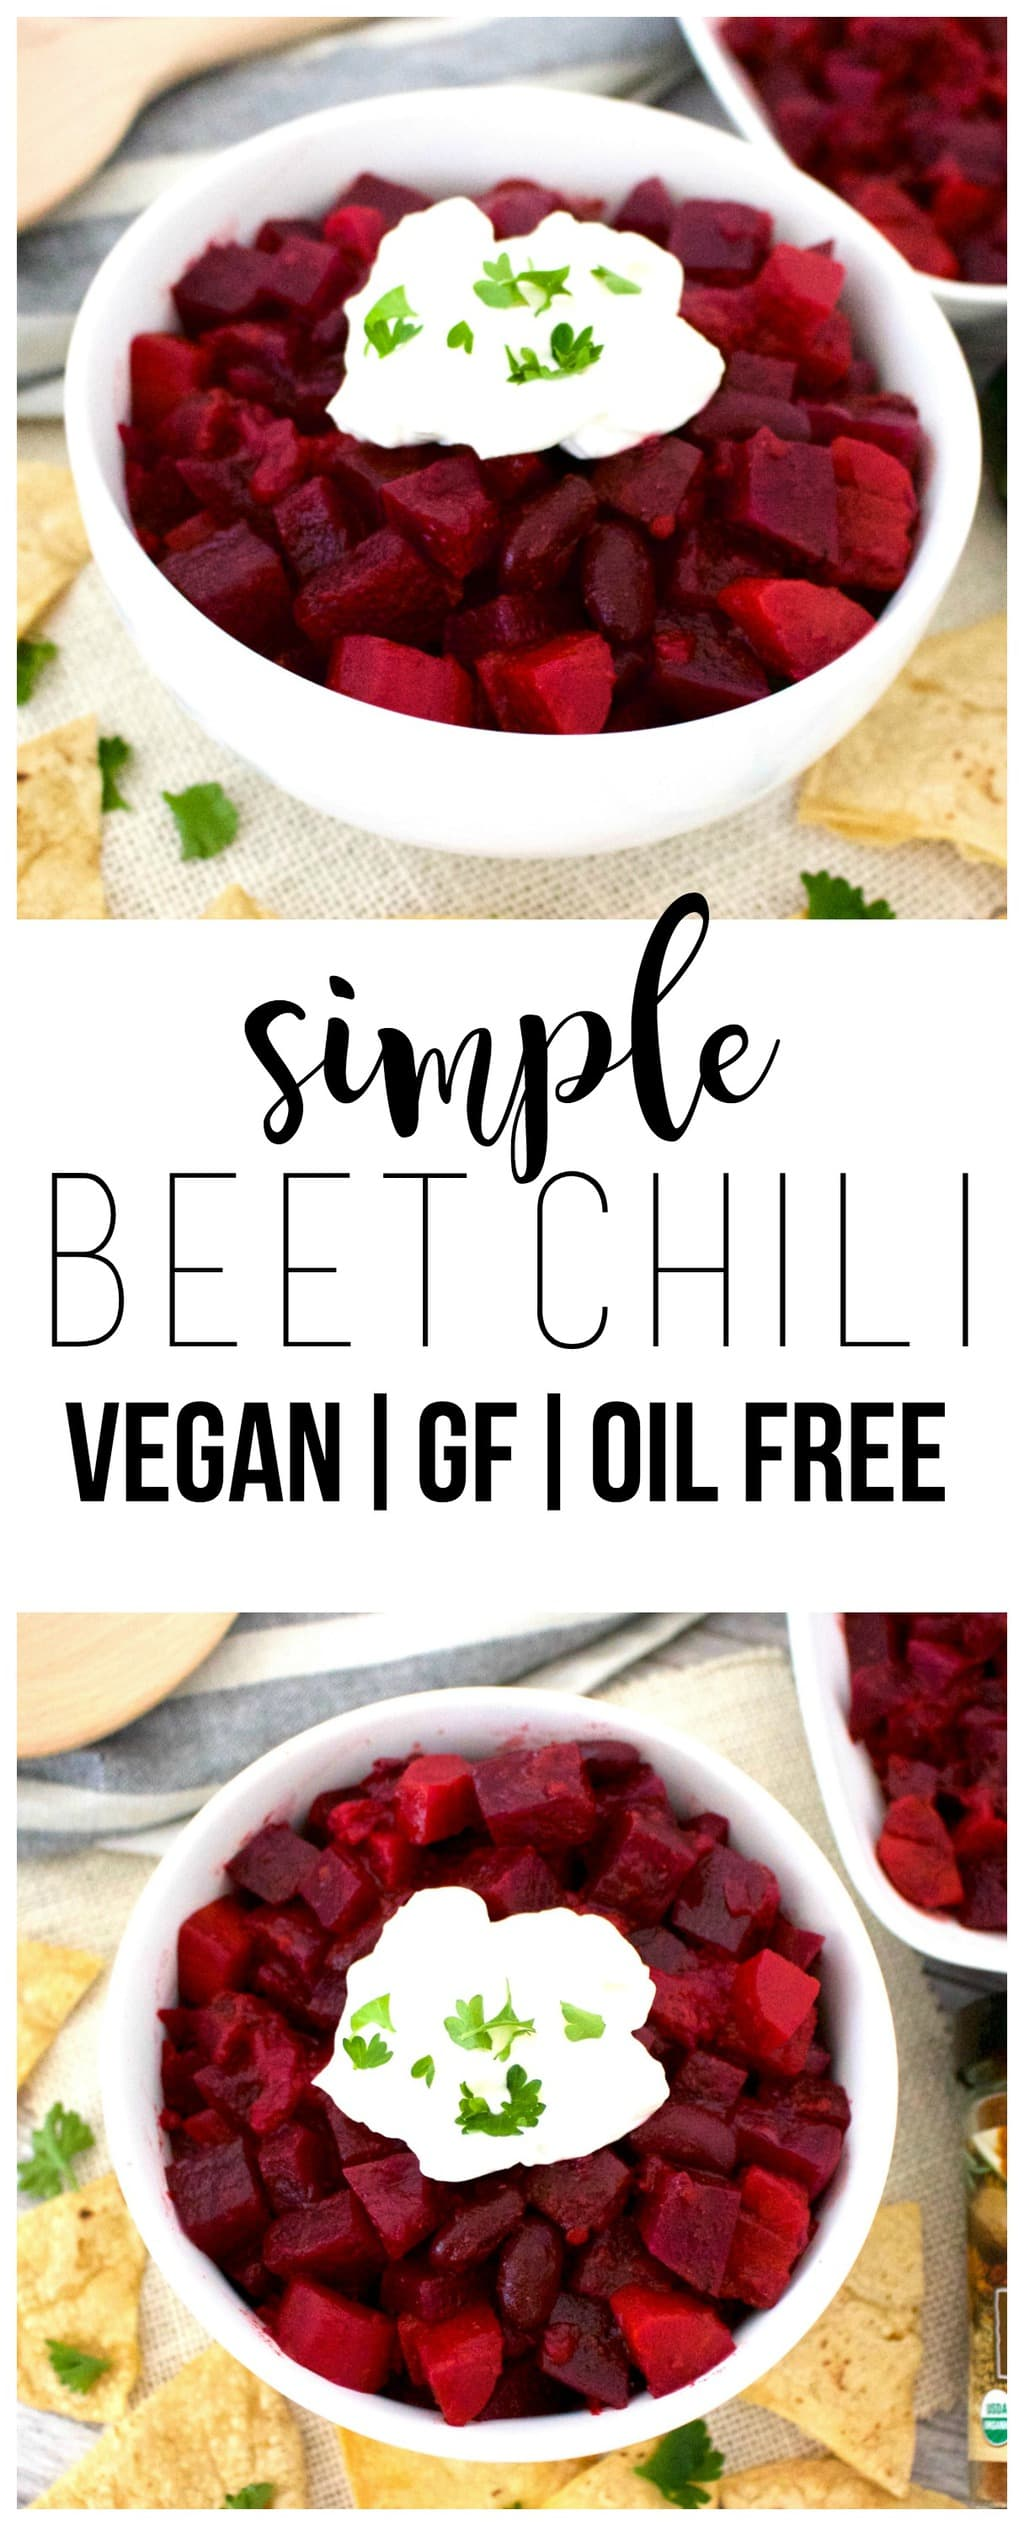 This AMAZING Beet Chlii is totally delicious! The perfect, comforting vegan lunch or dinner. It's also gluten-free, paleo friendly, oil-free & low-fat.